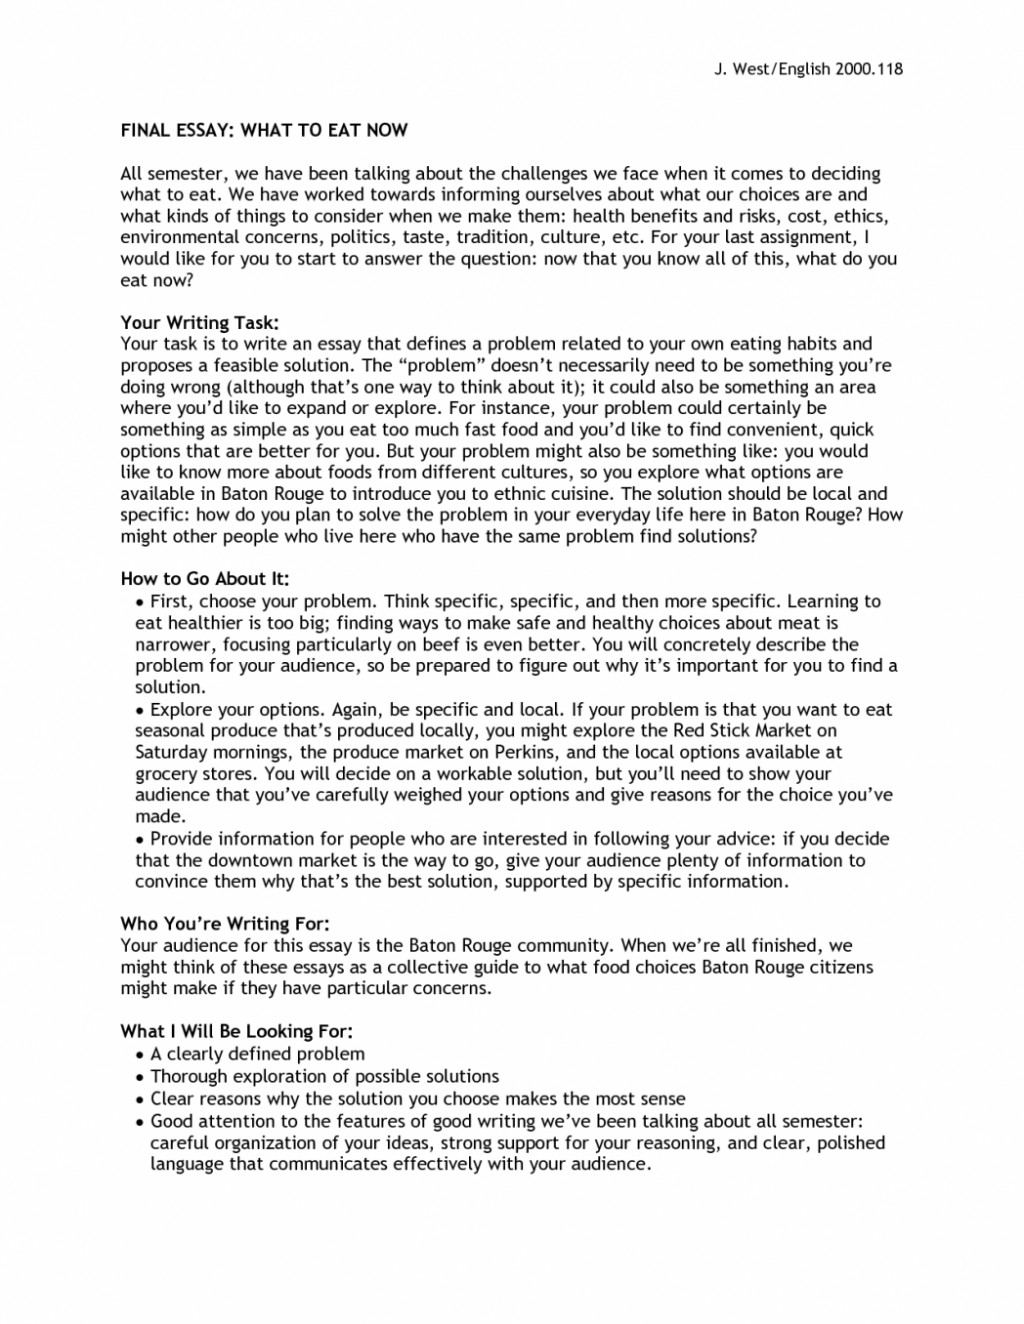 014 Best Photos Of Personal Autobiography Essay Samples How To Write An Autobiographical Outline College Sample Essays Examples Biography For Medical School Graduate Grad High Job Scholarship Unique Example About Yourself Tagalog Bio Students Large